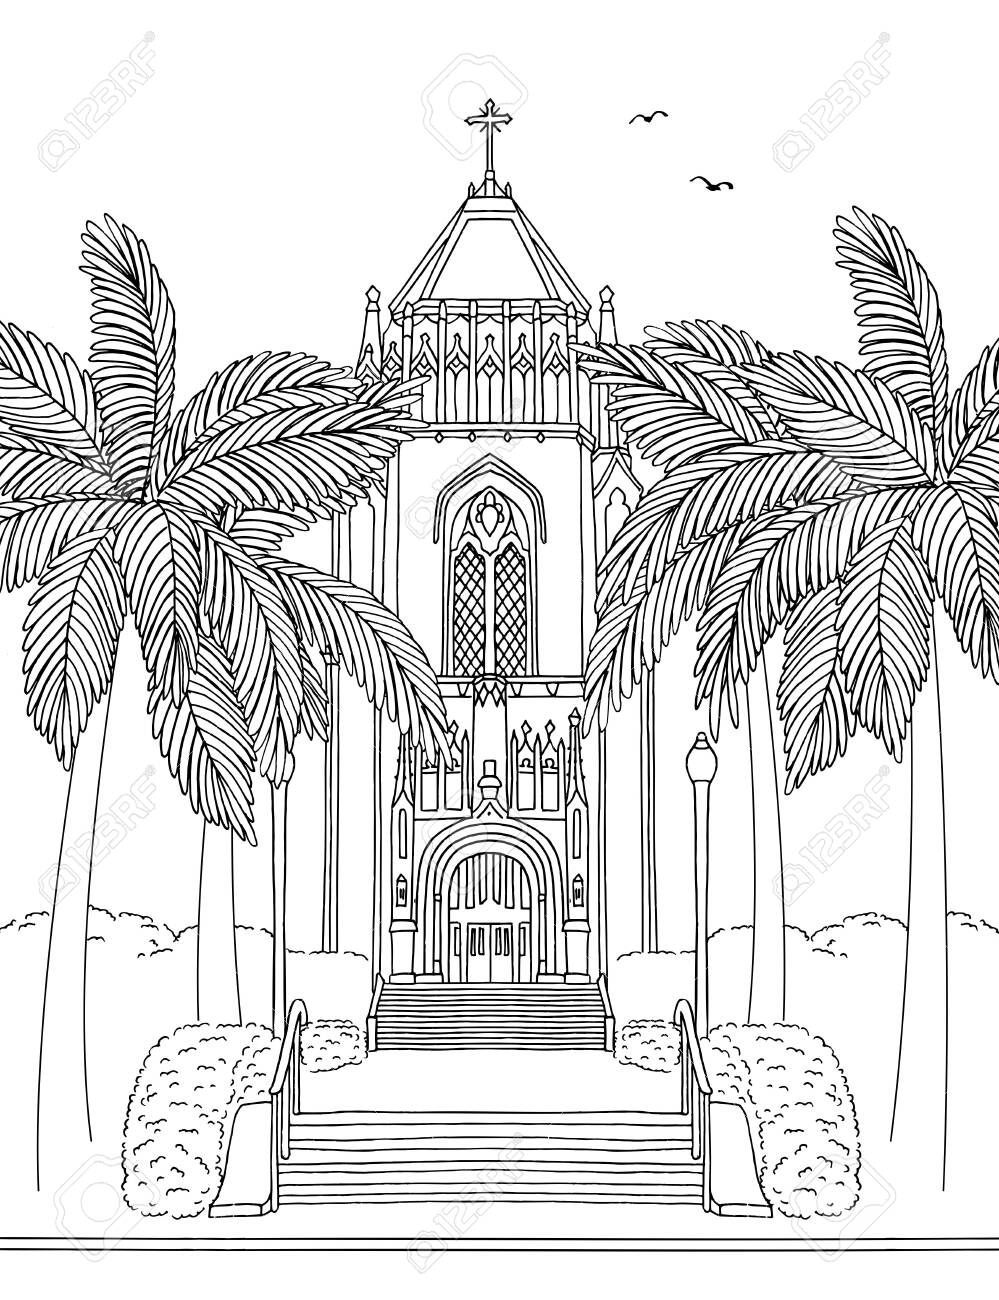 Hand drawn ink illustration of the San Francisco University Lone Mountain Tower, California - 131593747